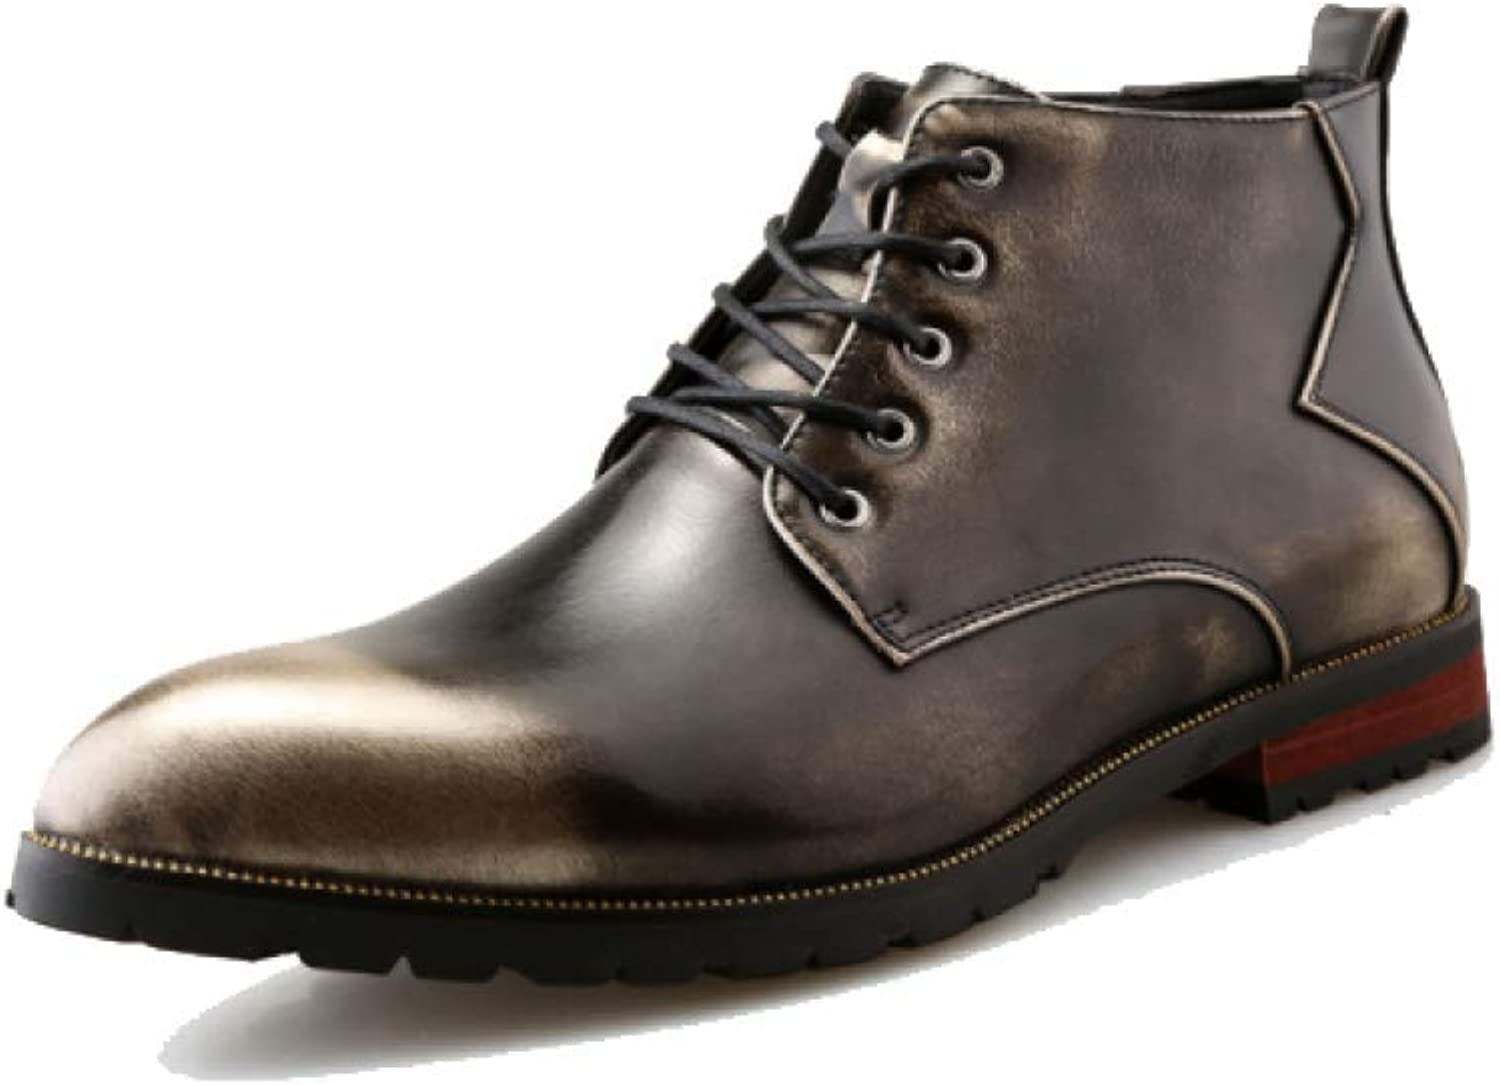 XINGF Men's High-top Casual Business shoes, British Retro Boots, Fashion Youth Wedding shoes